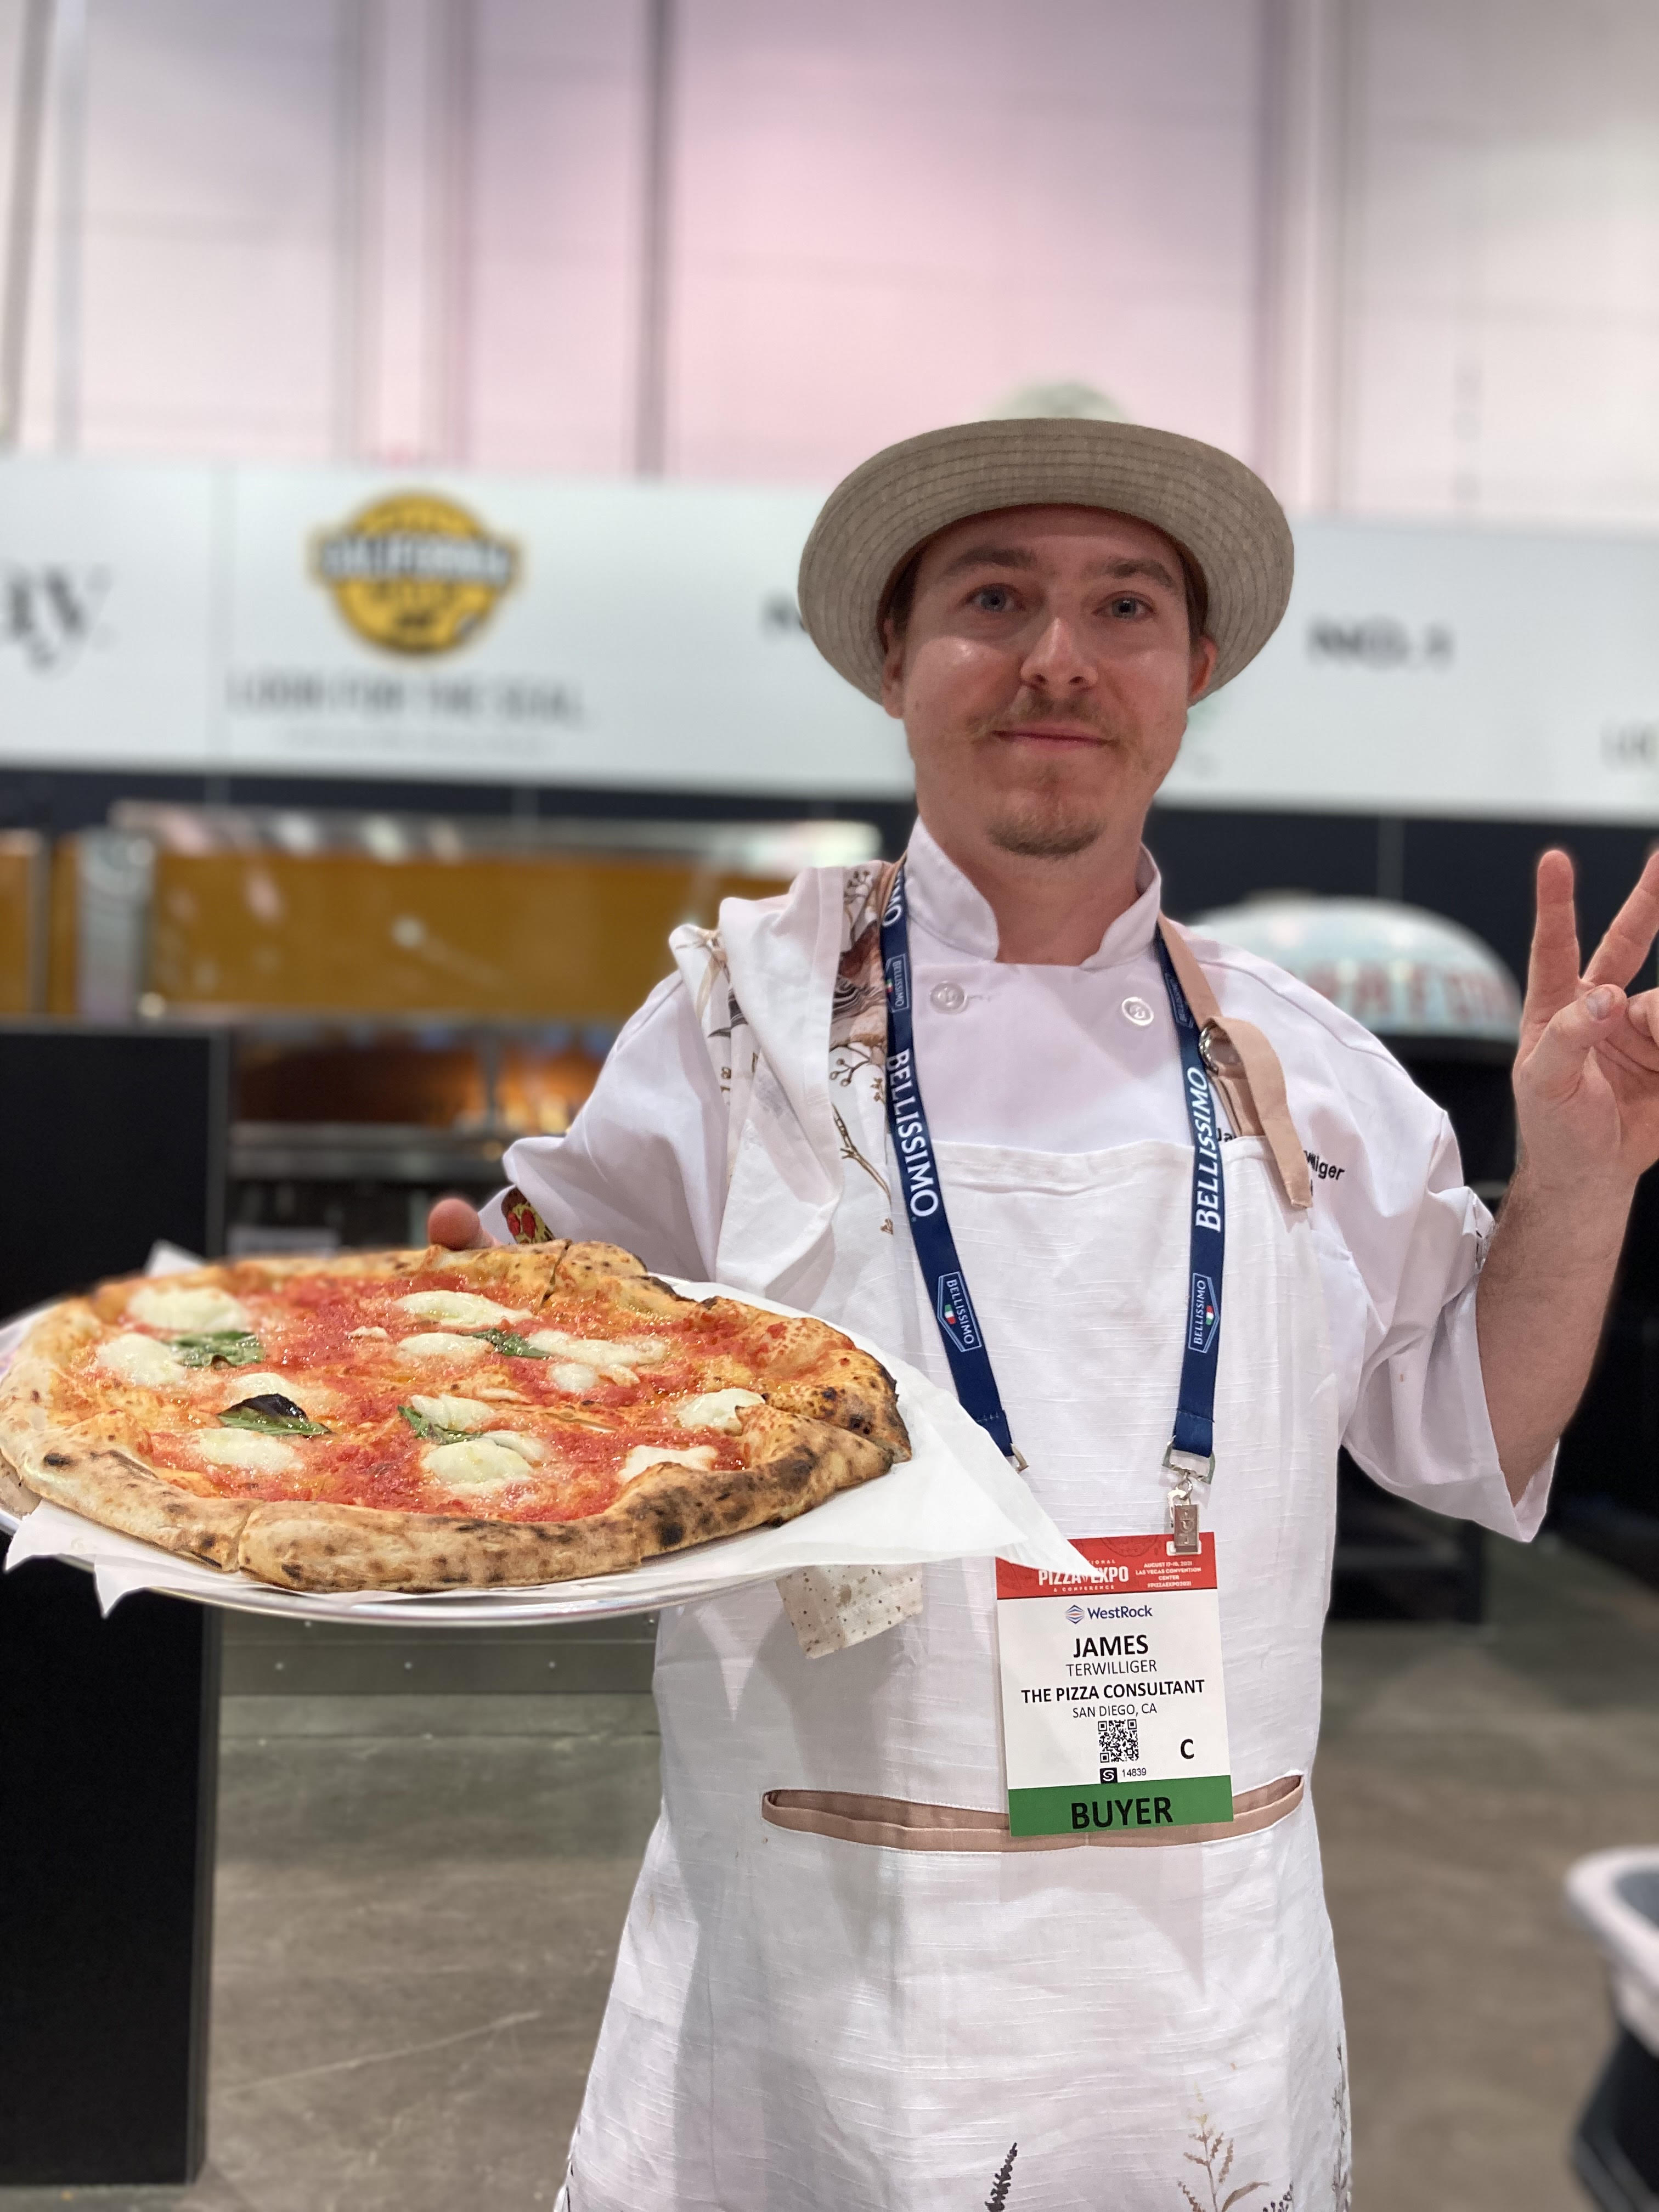 James Terwilliger, The Pizza Cinsultant, San Diego, CA. 1